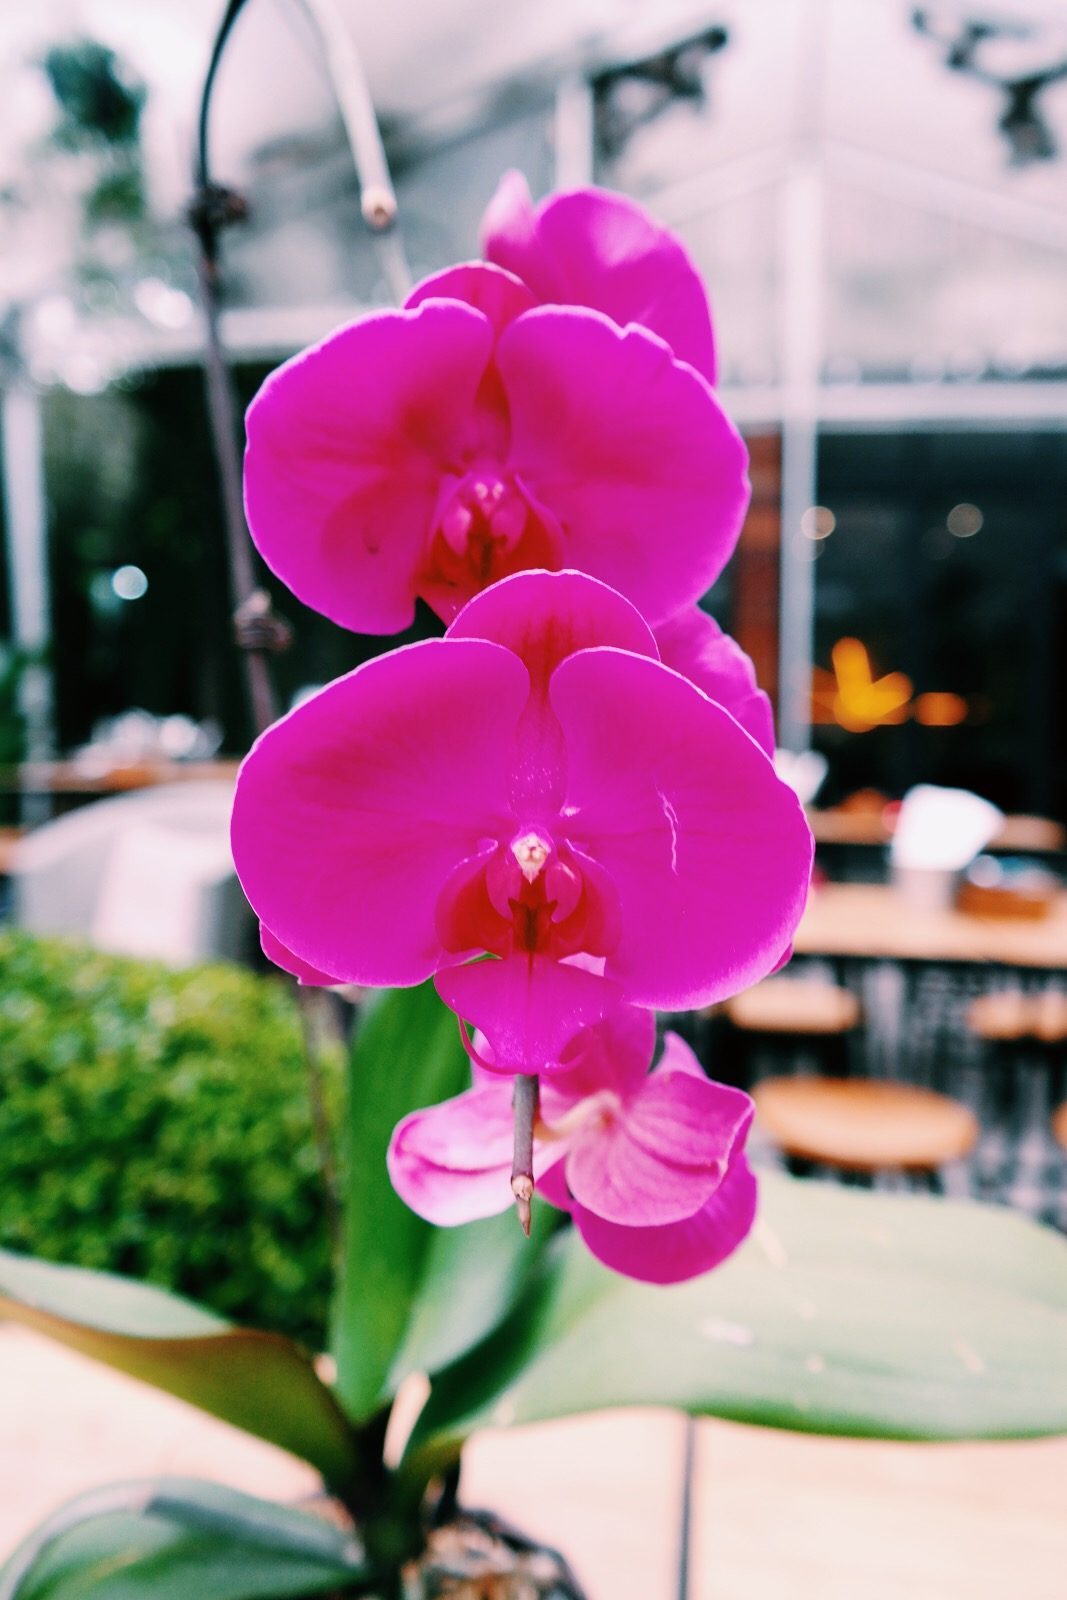 Flower-URBN-Hotel-Shanghai-terrasse-terrace-bar-boutique-hotel-Tempting-Places-Jiaozhou-Rd-Jingan-district-photo-UsofParis-travel-blog